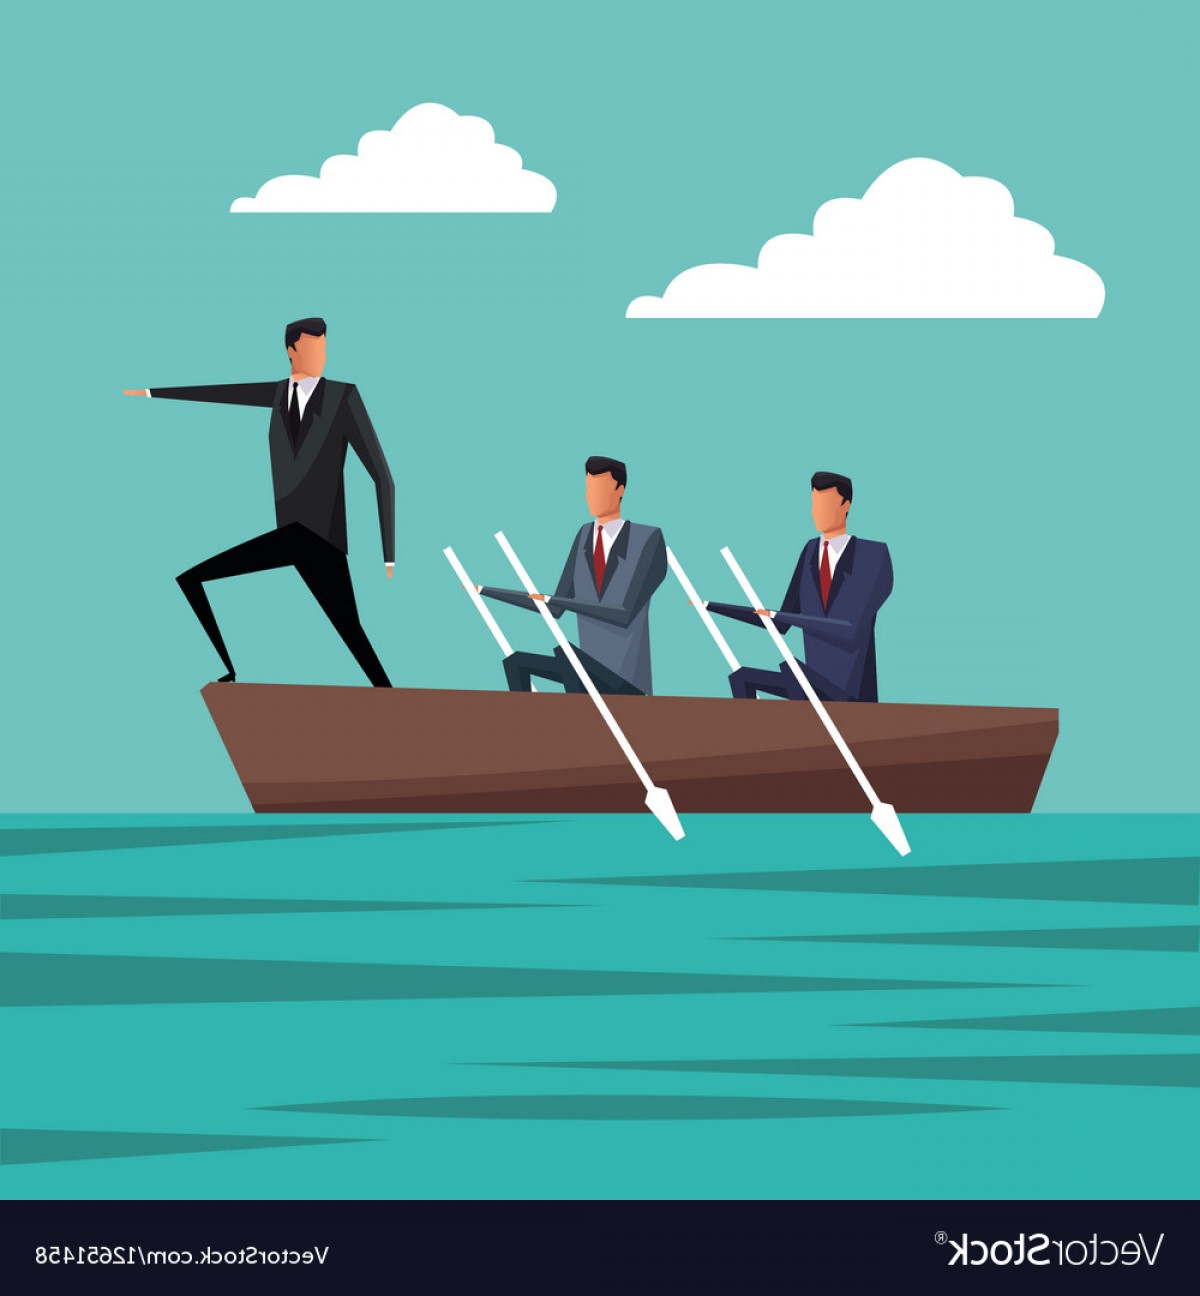 Growth Vector People: Business People Paddling Team Work Manager Growth Vector